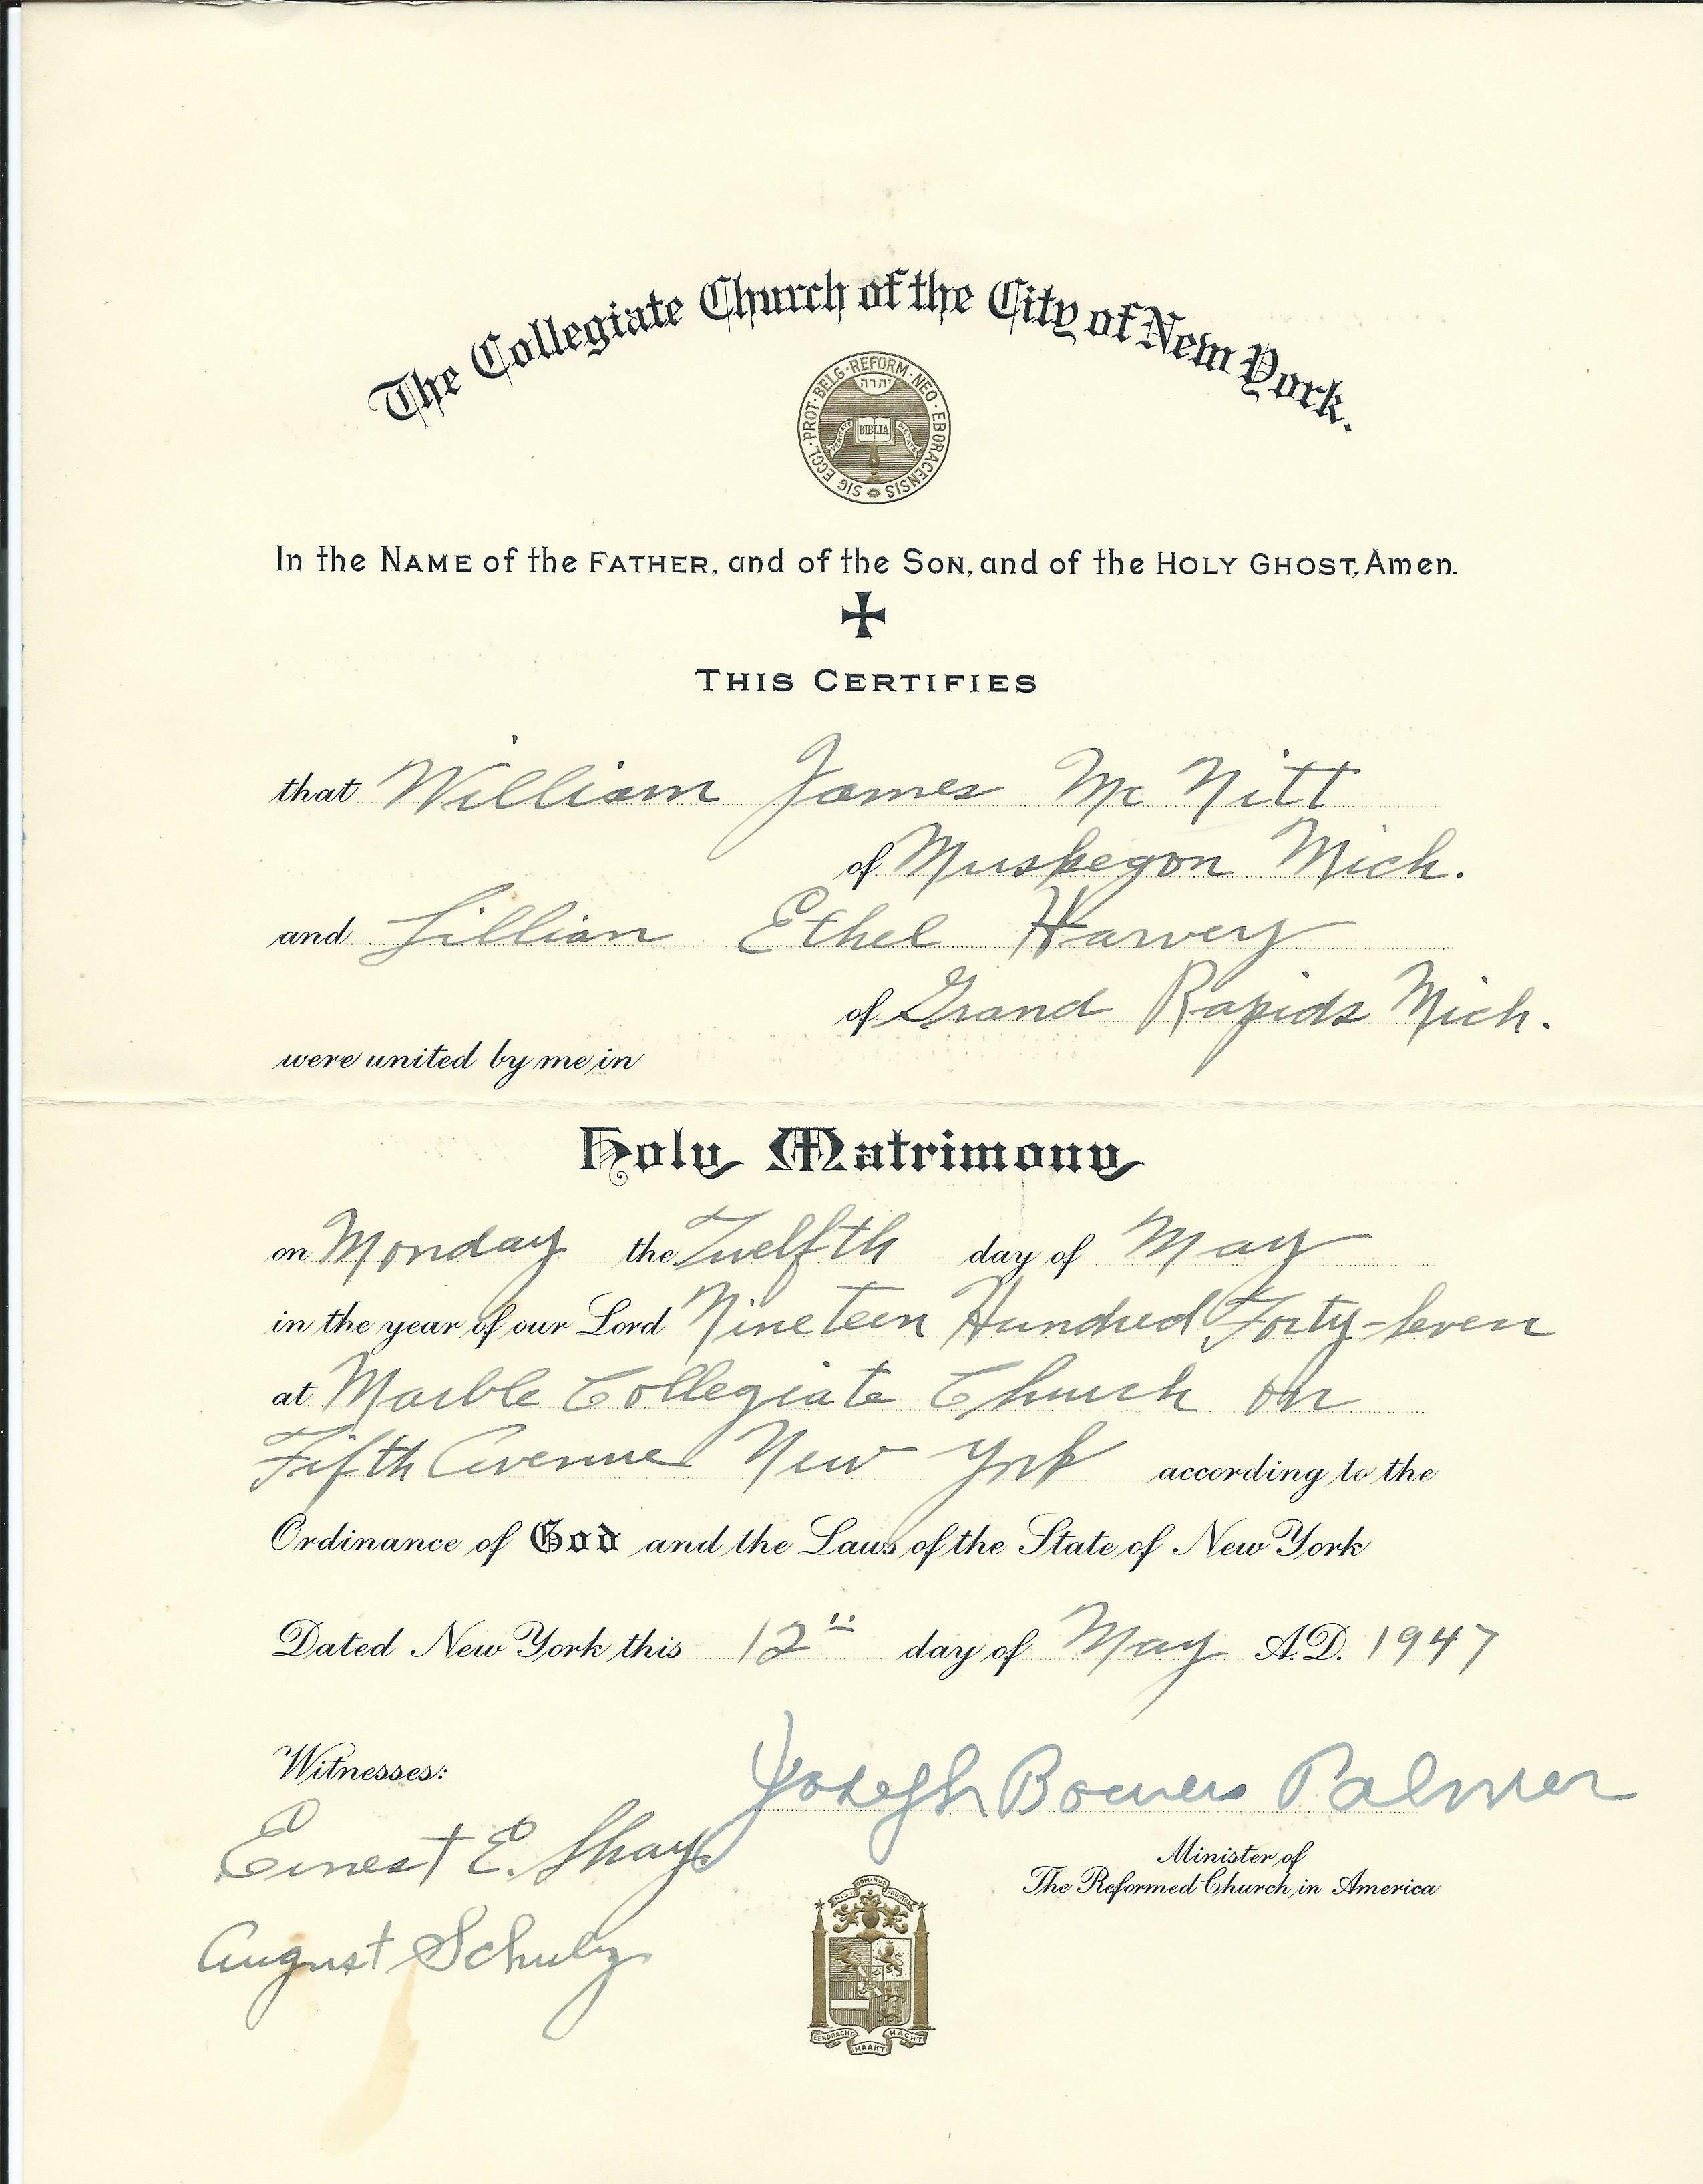 Marriage to lilian harvey 1947 marriage certificate 1betcityfo Gallery